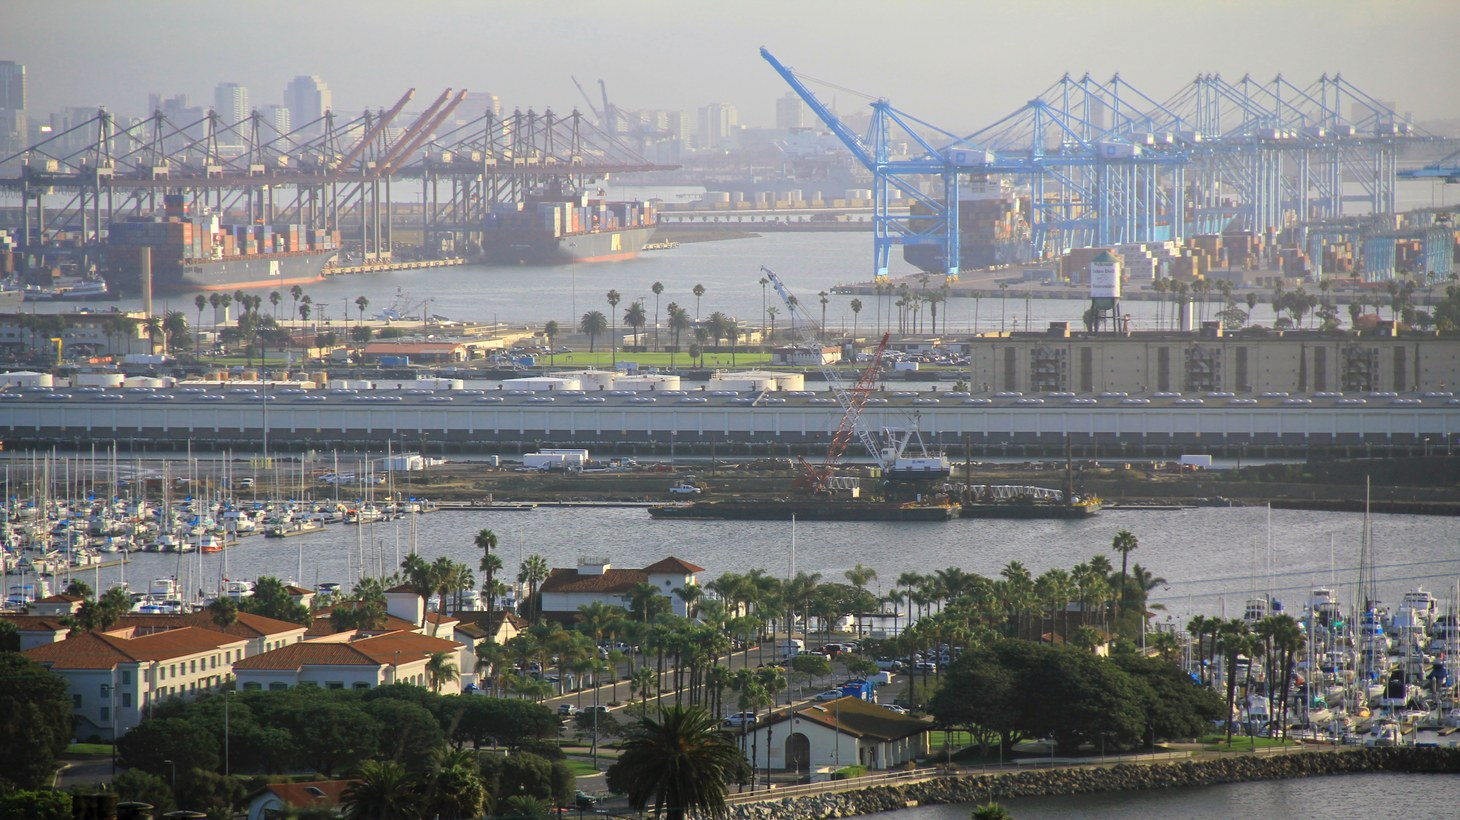 The port of Los Angeles is one of the United States' top gateways for international trade and commerce. But it's backed up now because many dockworkers are off the job due to coronavirus.